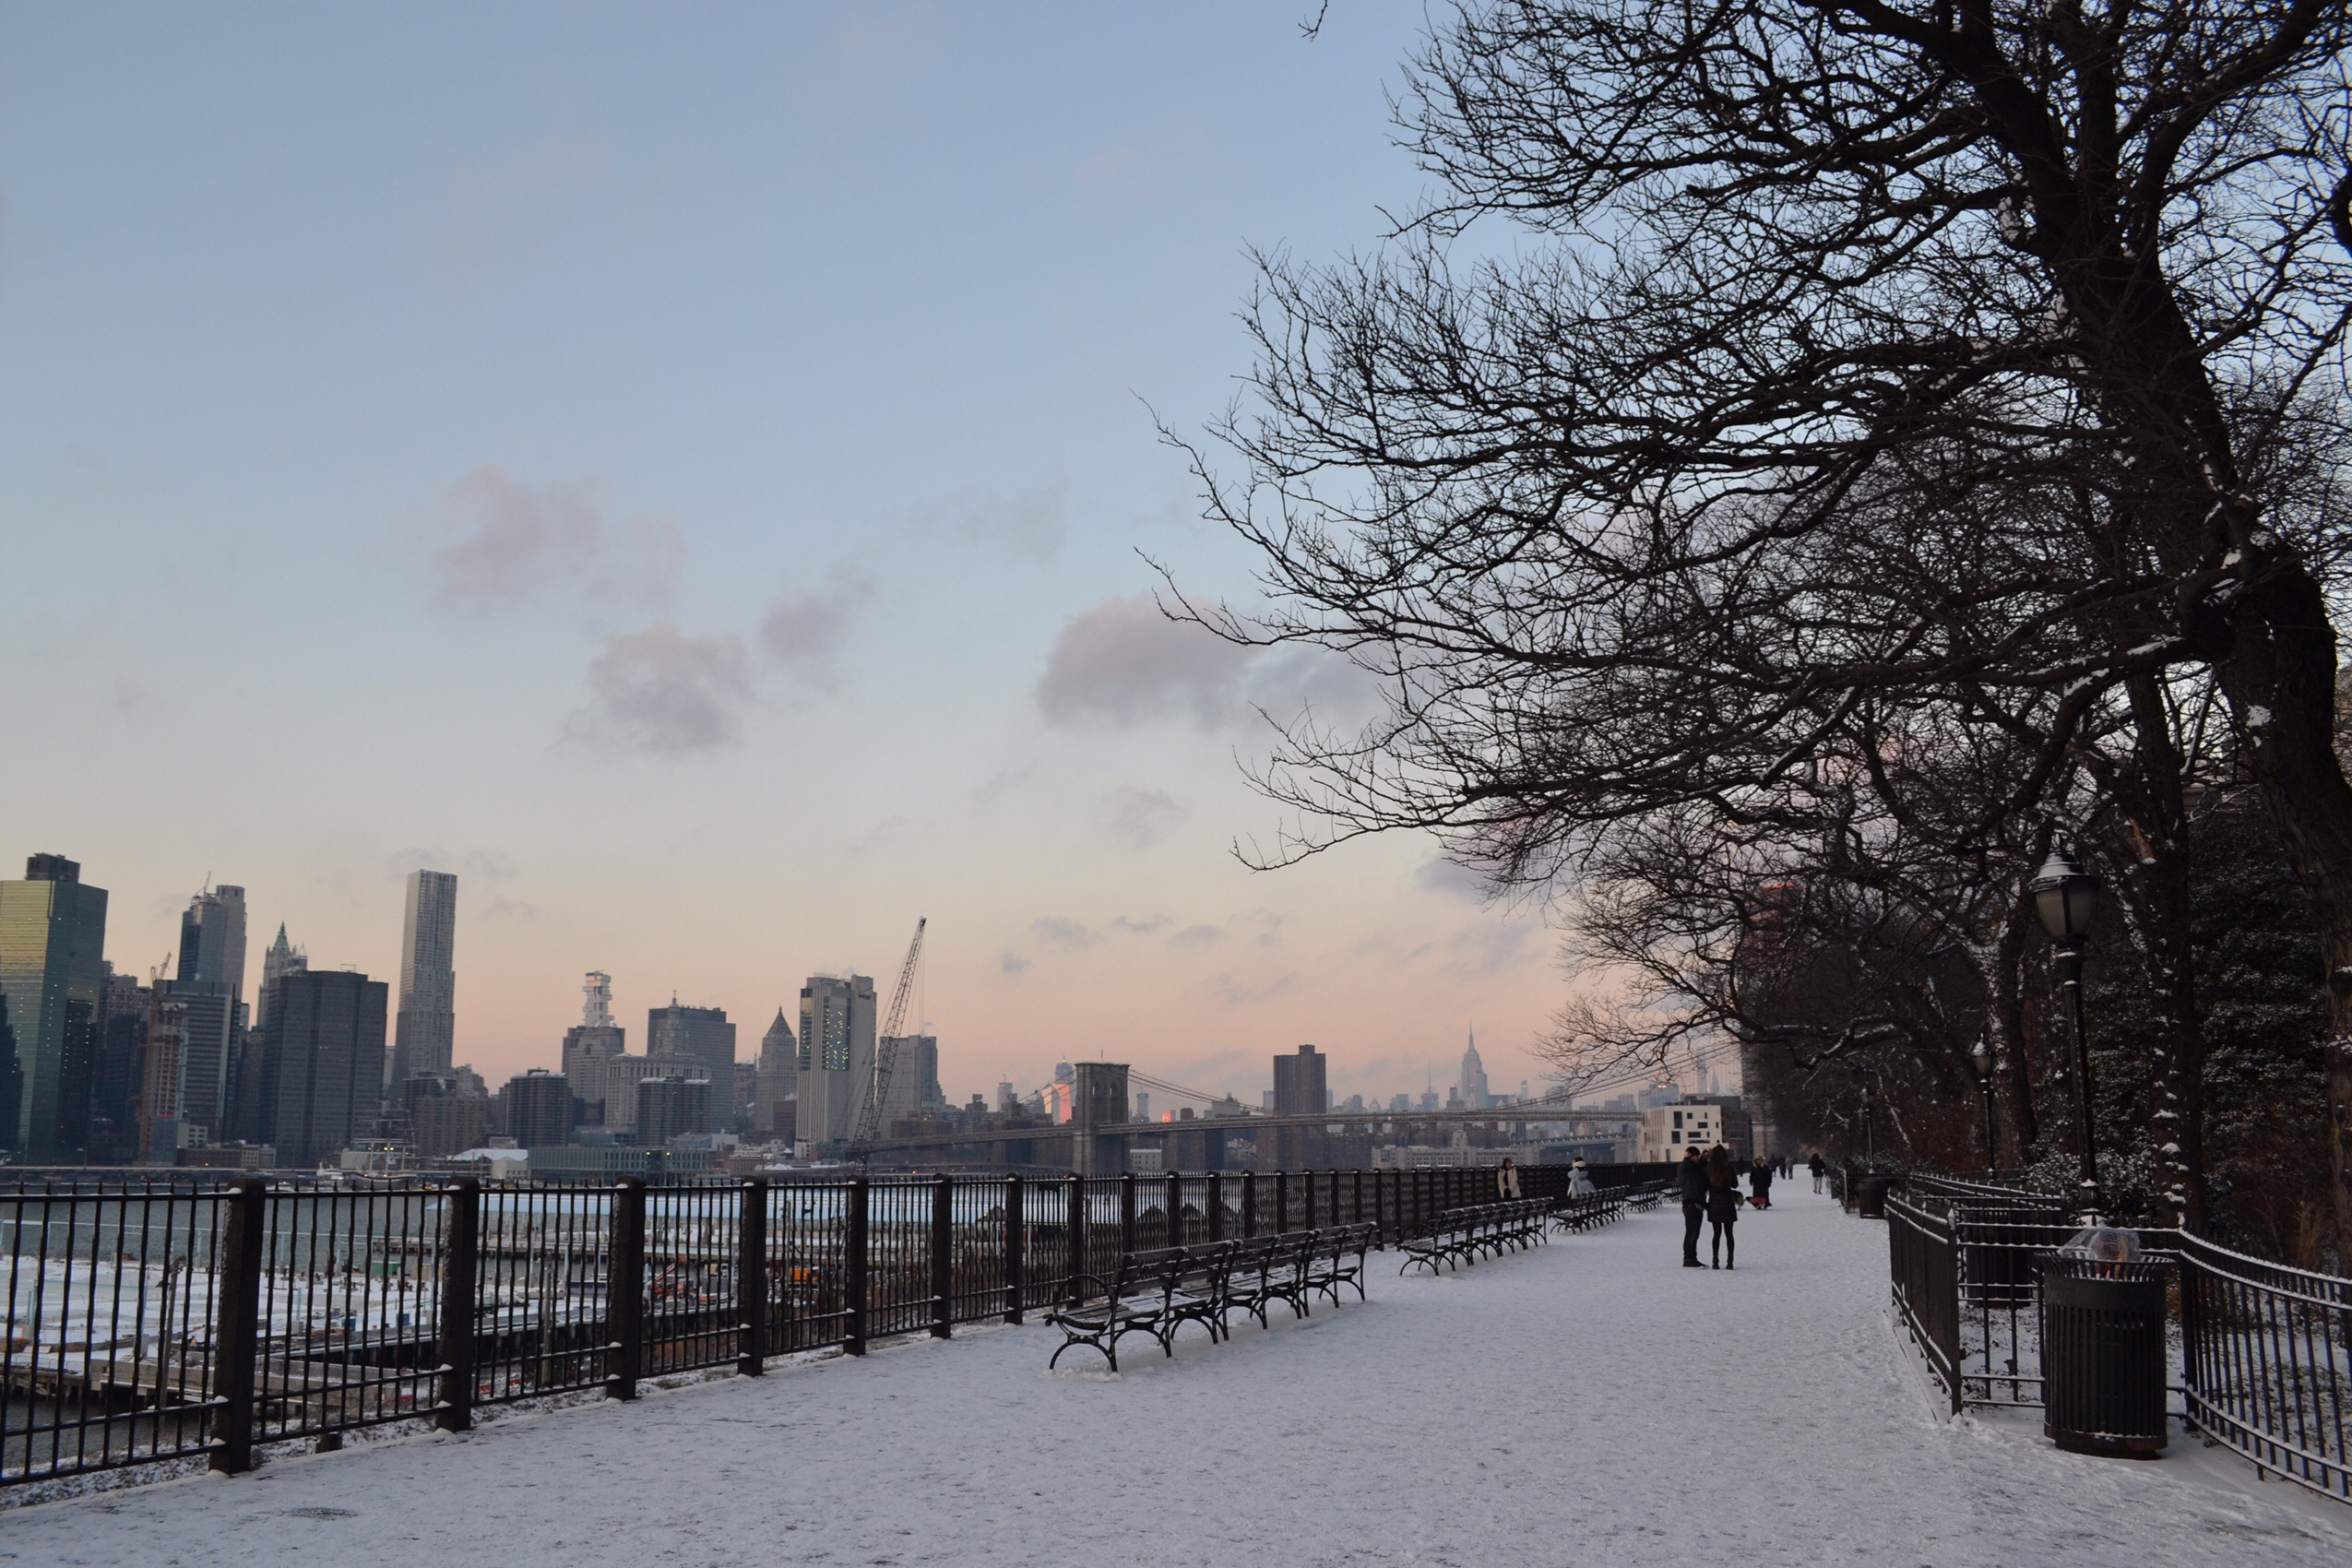 Image of Brooklyn Heights promenade in New York